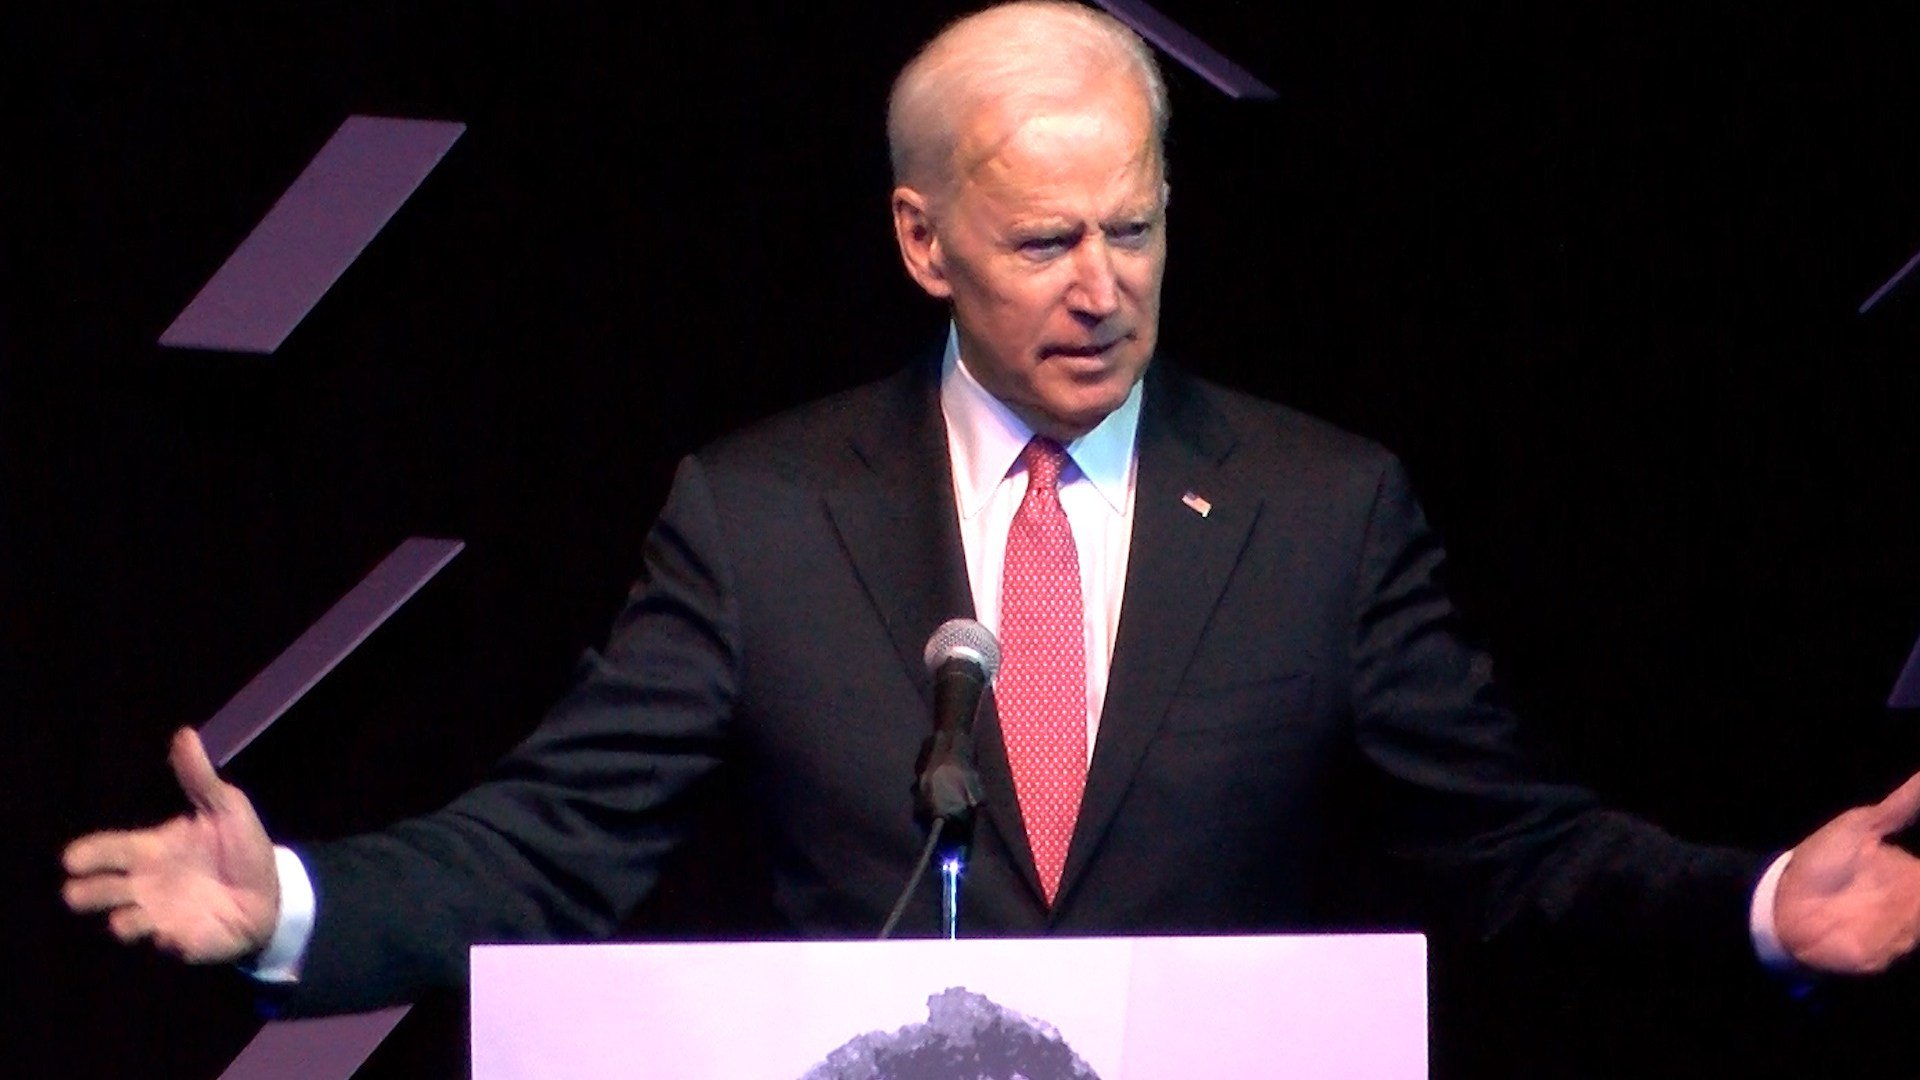 Photo of Joe Biden talking with homeless man goes viral""